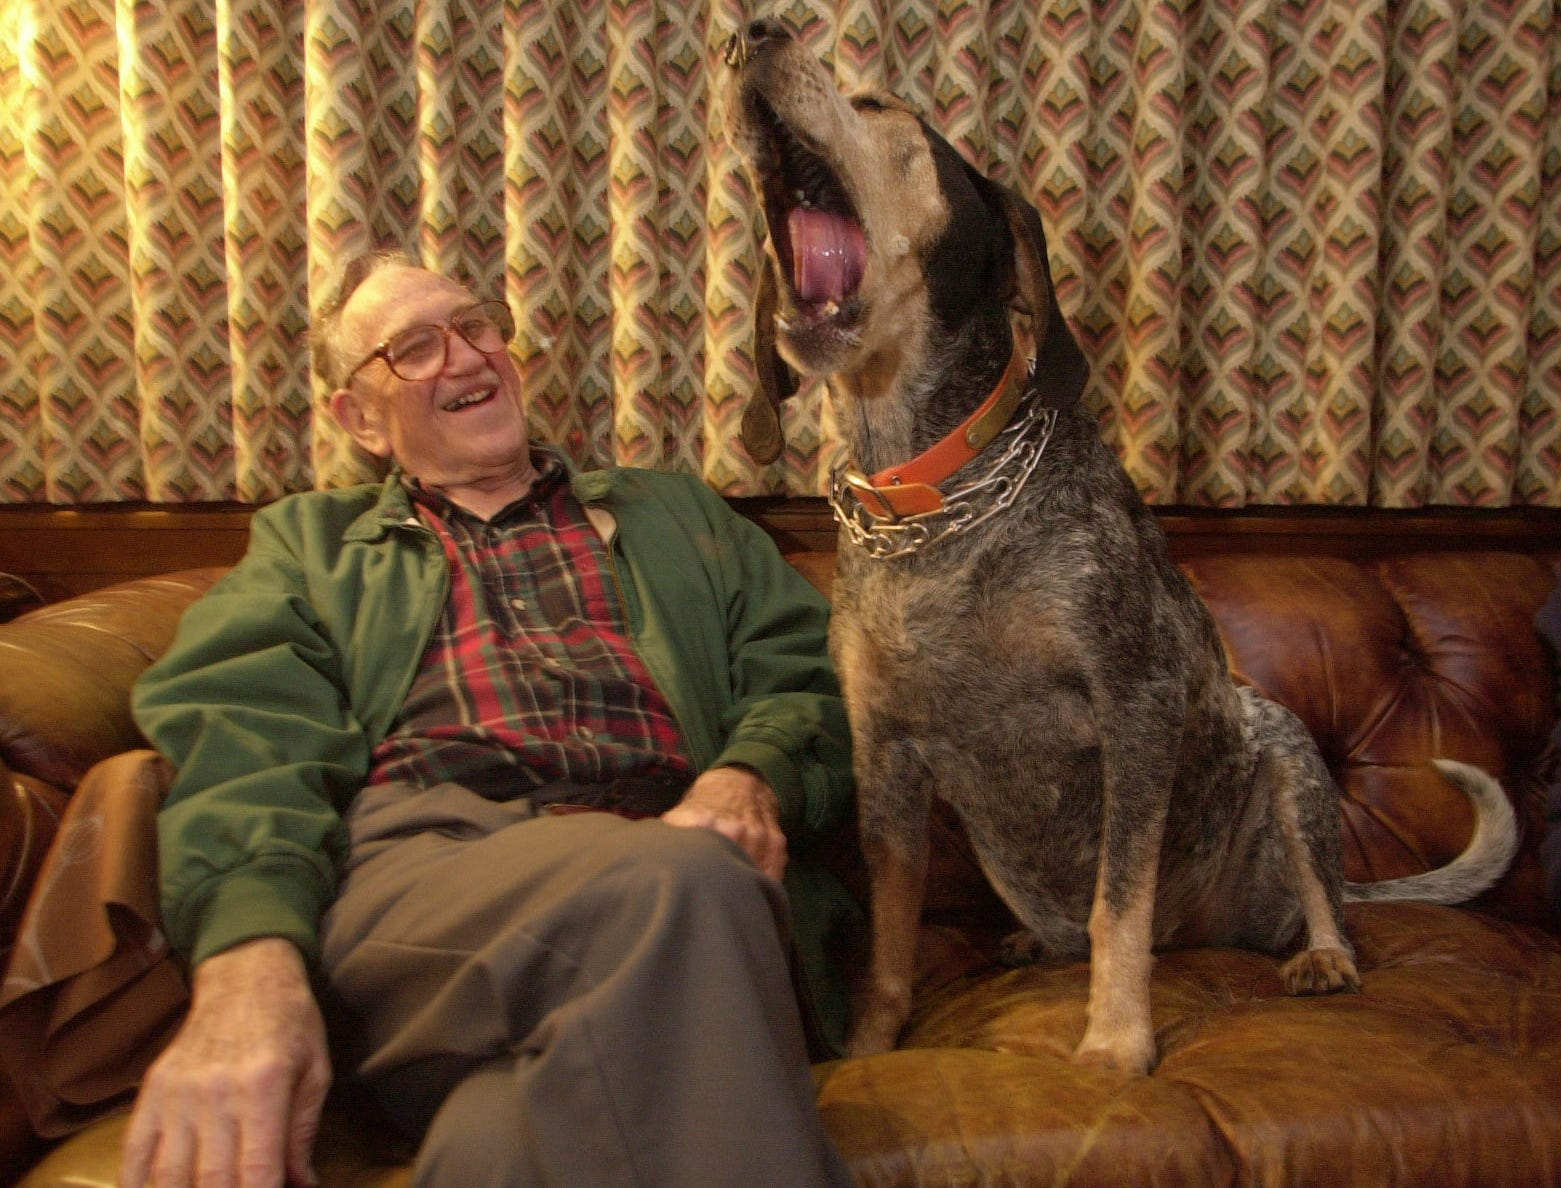 Earl Hudson, Smokey's owner, laughs as his dog lets out a big yawn while sitting next to him on the couch Friday evening before leaving for the fraternity house. All eight Smokeys have been in the the Hudson family for 50 years.